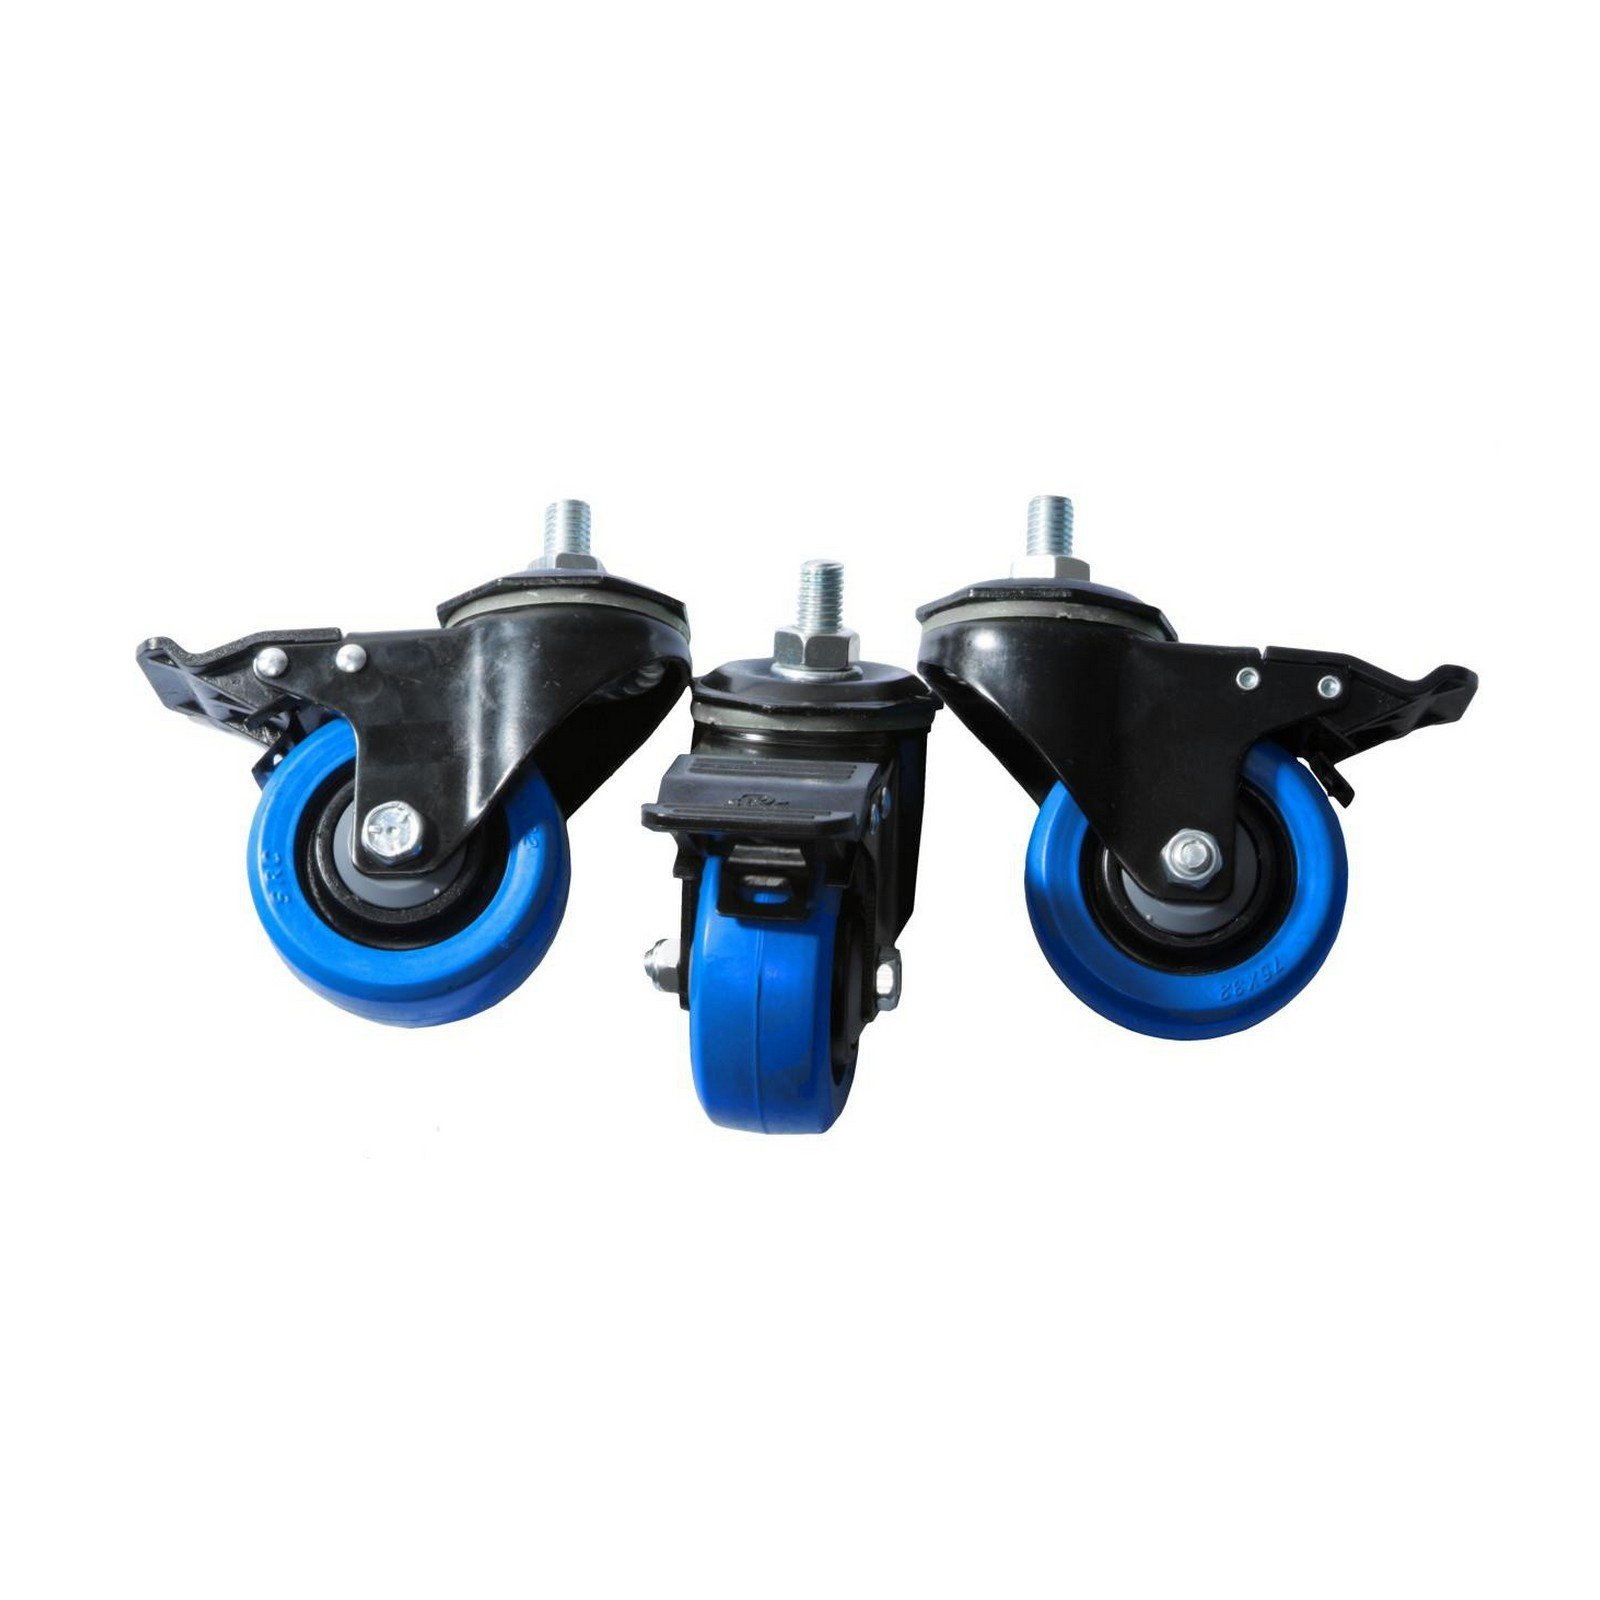 Triad Orbit TC | Industrial Grade Locking Casters for T3 Stands